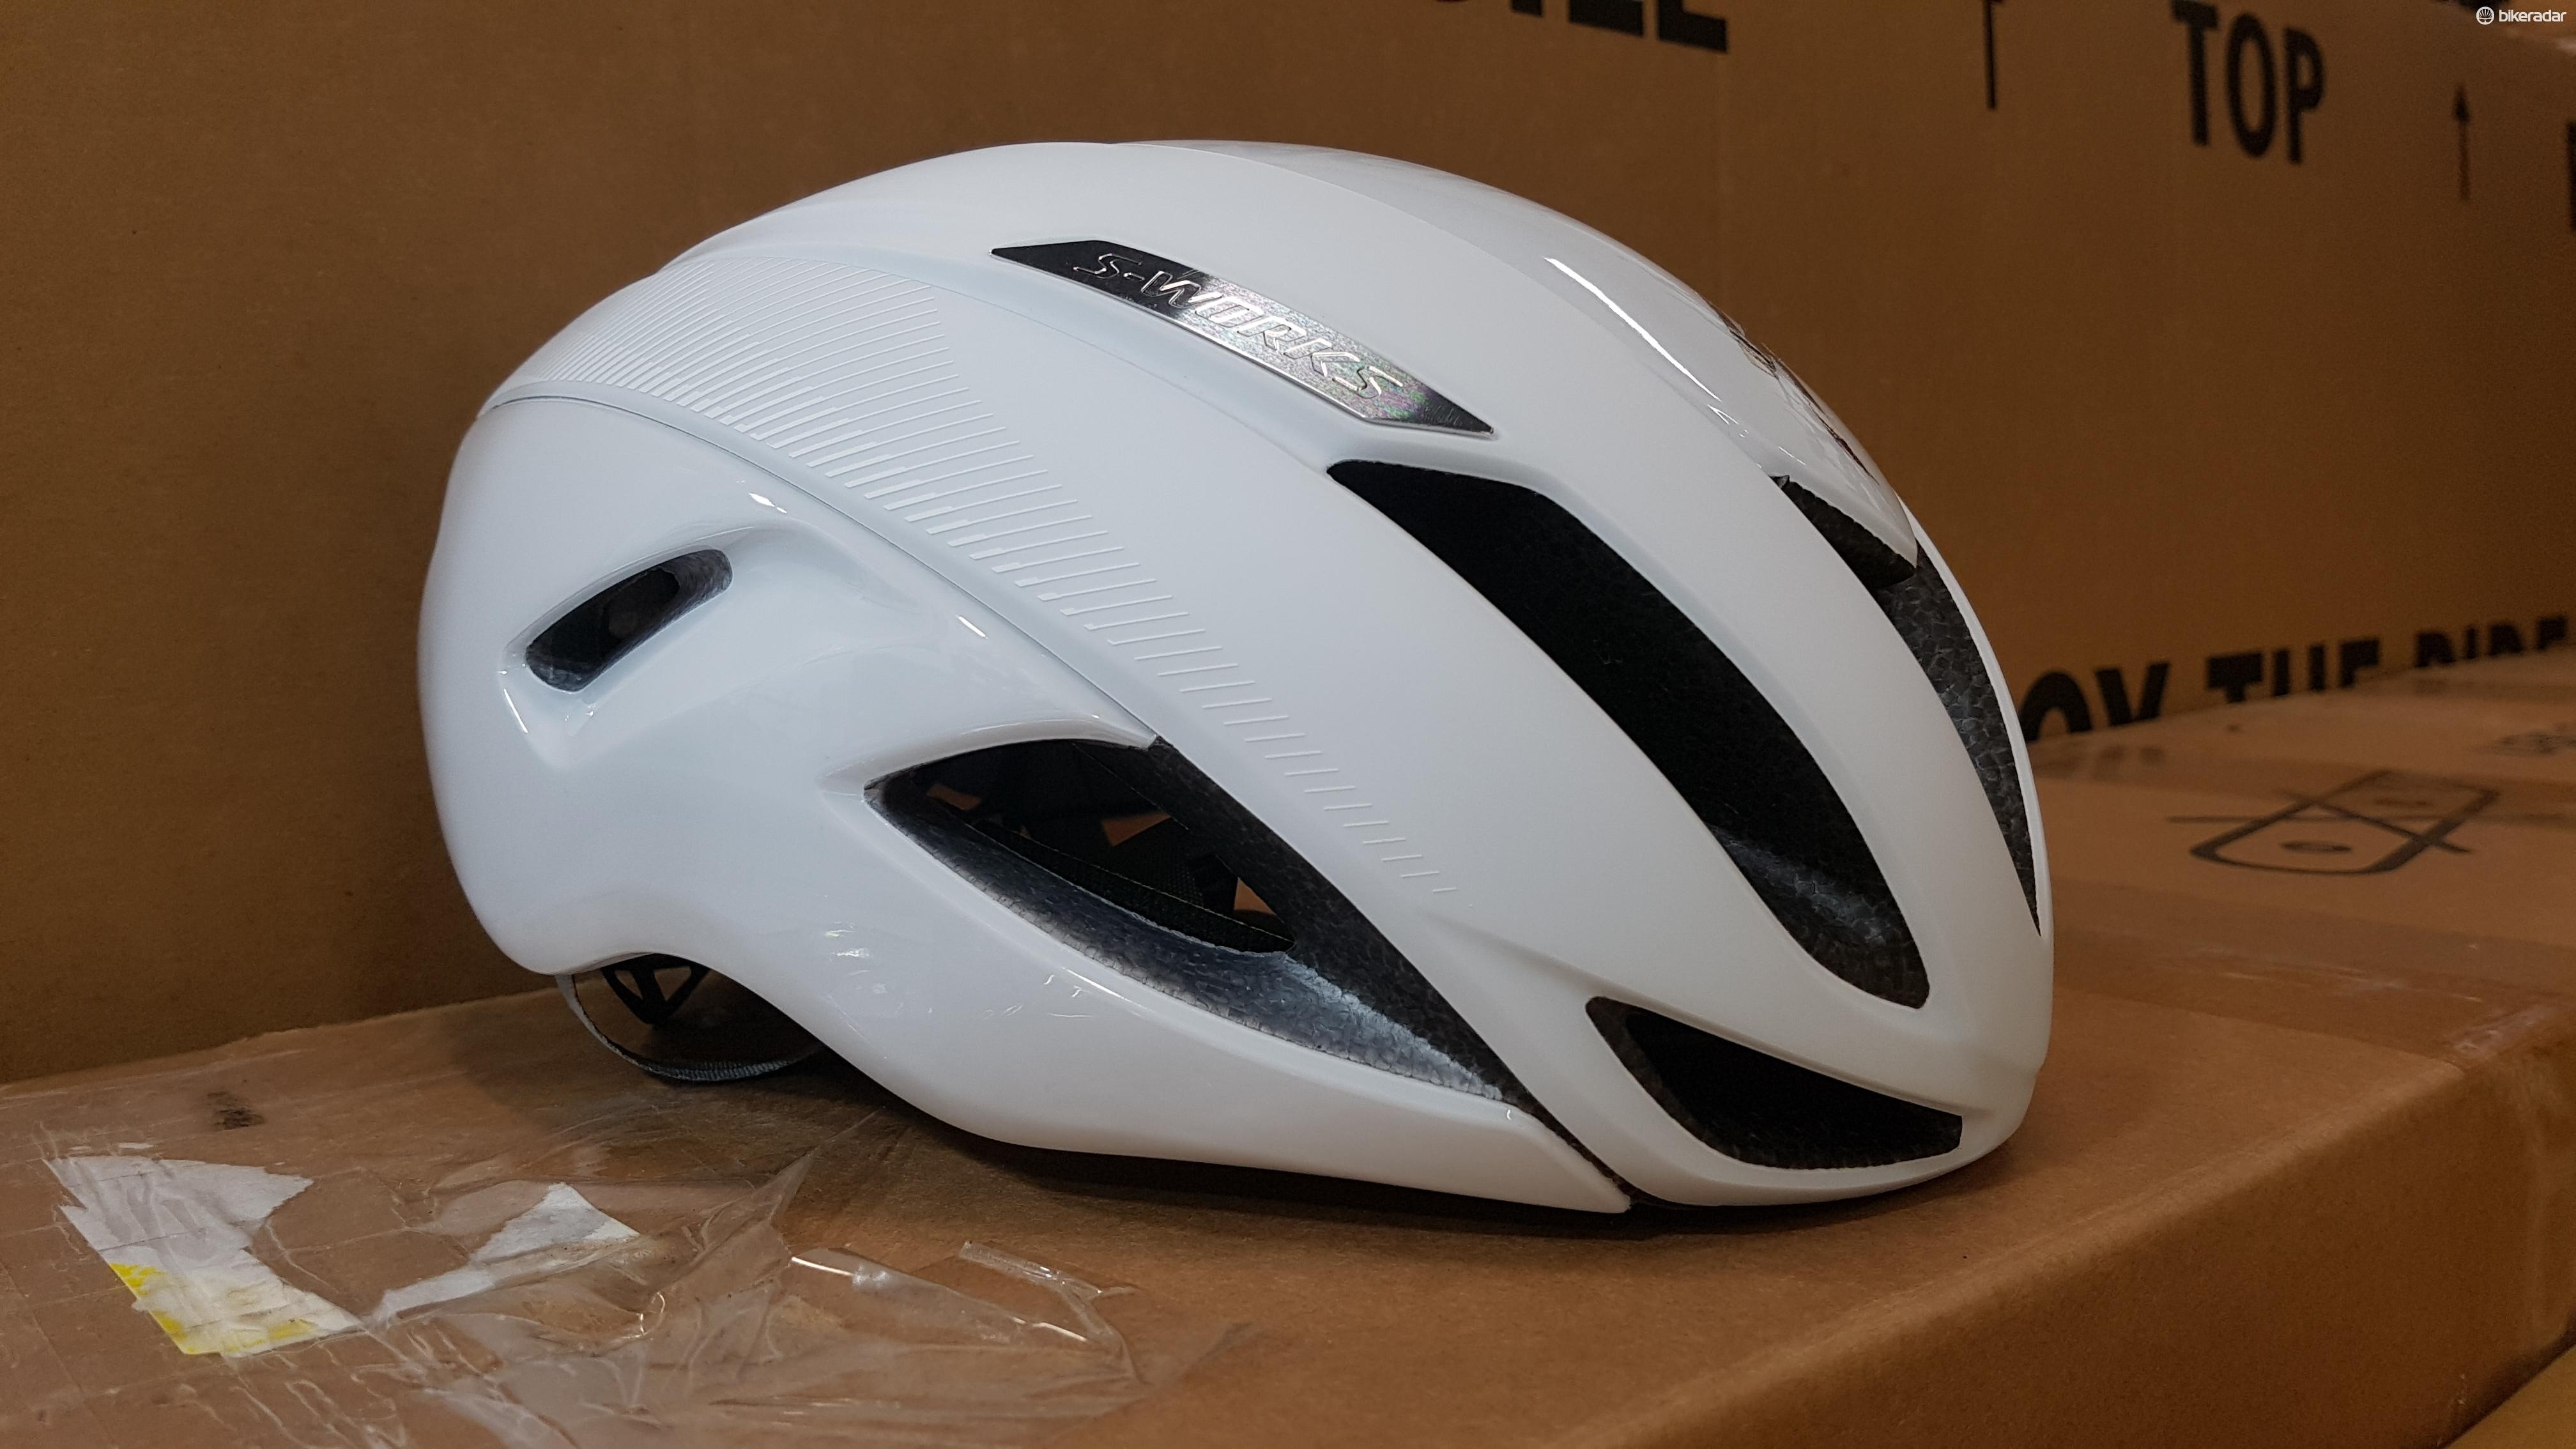 Specialized's new helmet is packed with safety features